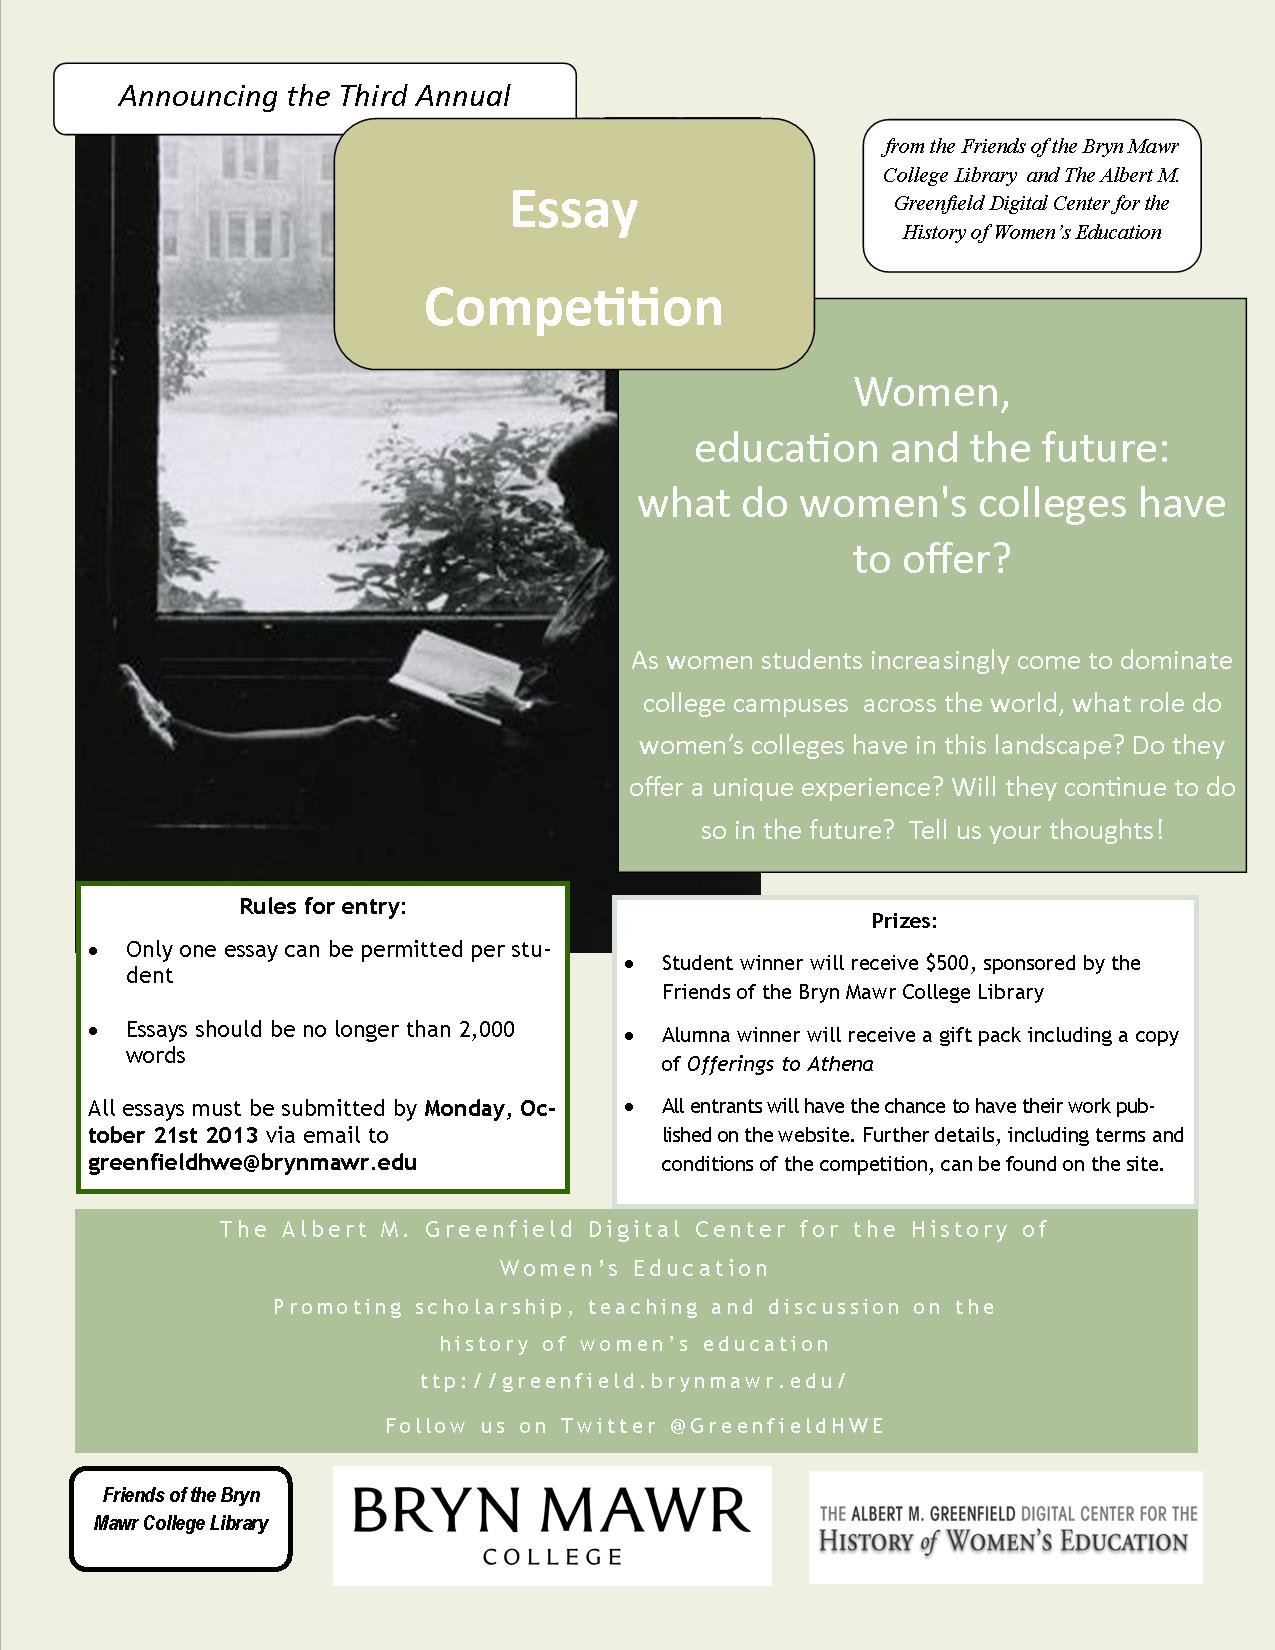 essay about women empowerment women essay should women have equal  essay competition educating women essay competition poster 2013